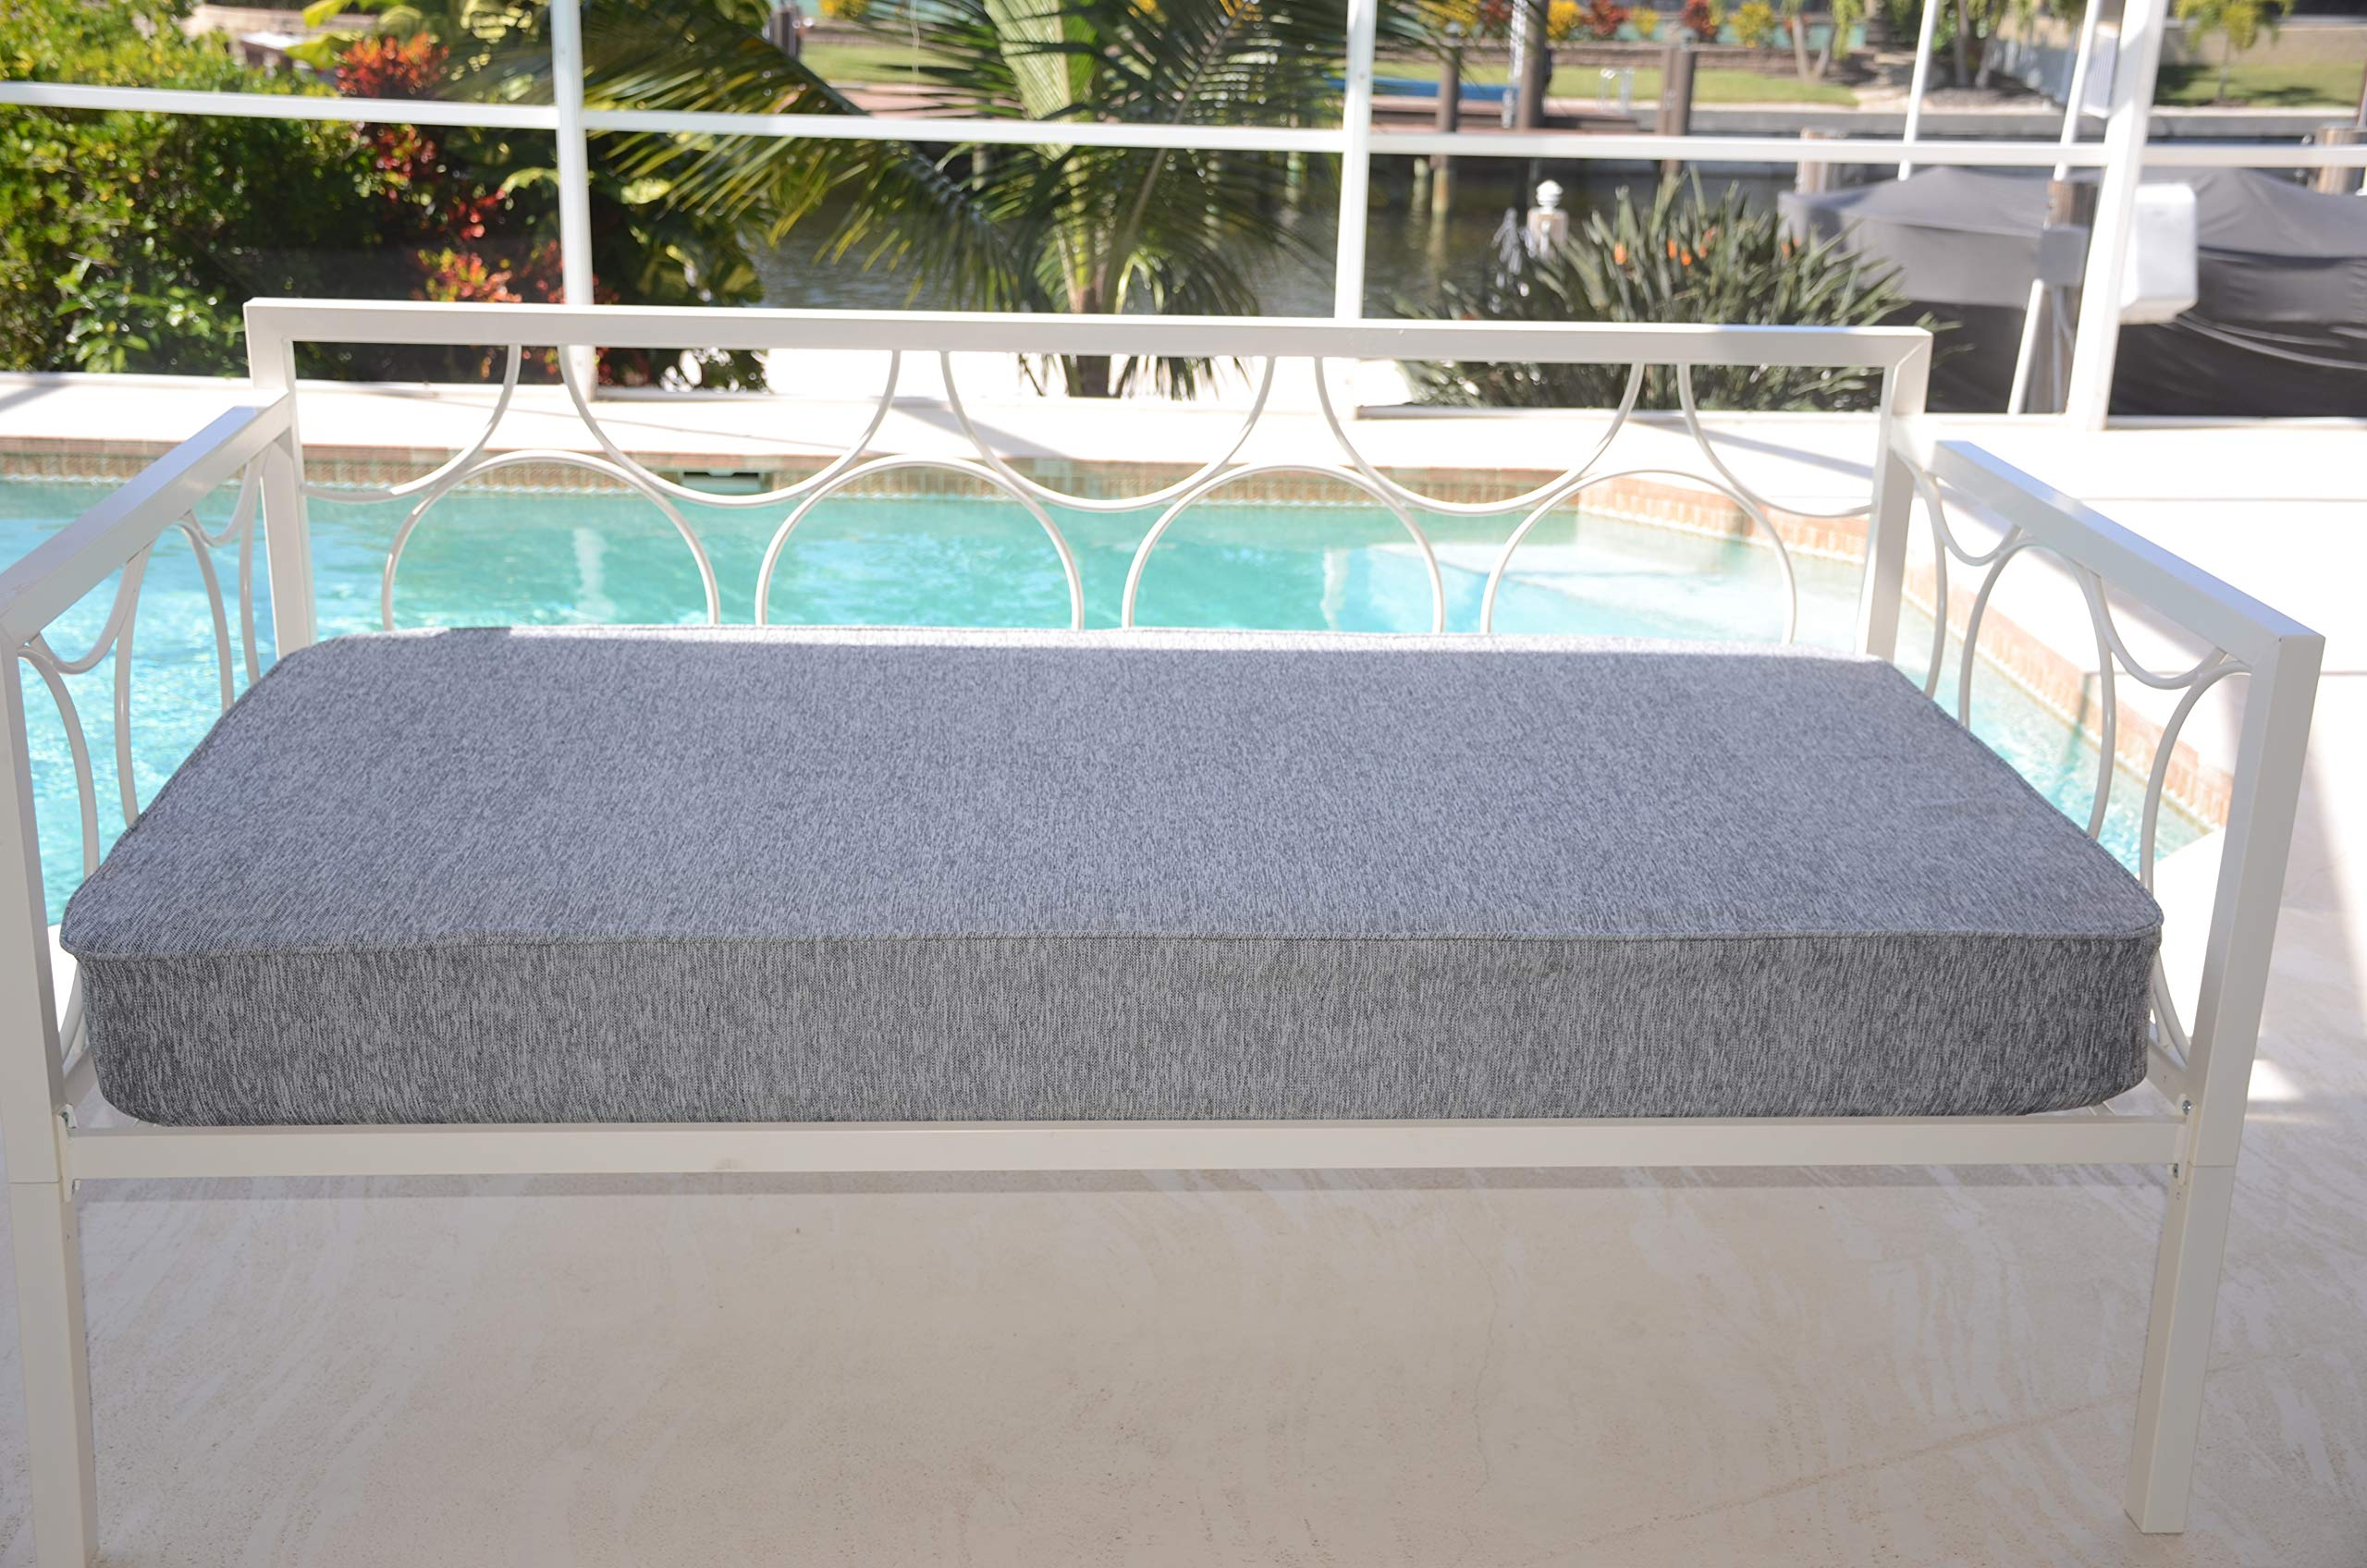 micama Daybed Matching Fitted Full Size Cover. Platinum Grey.